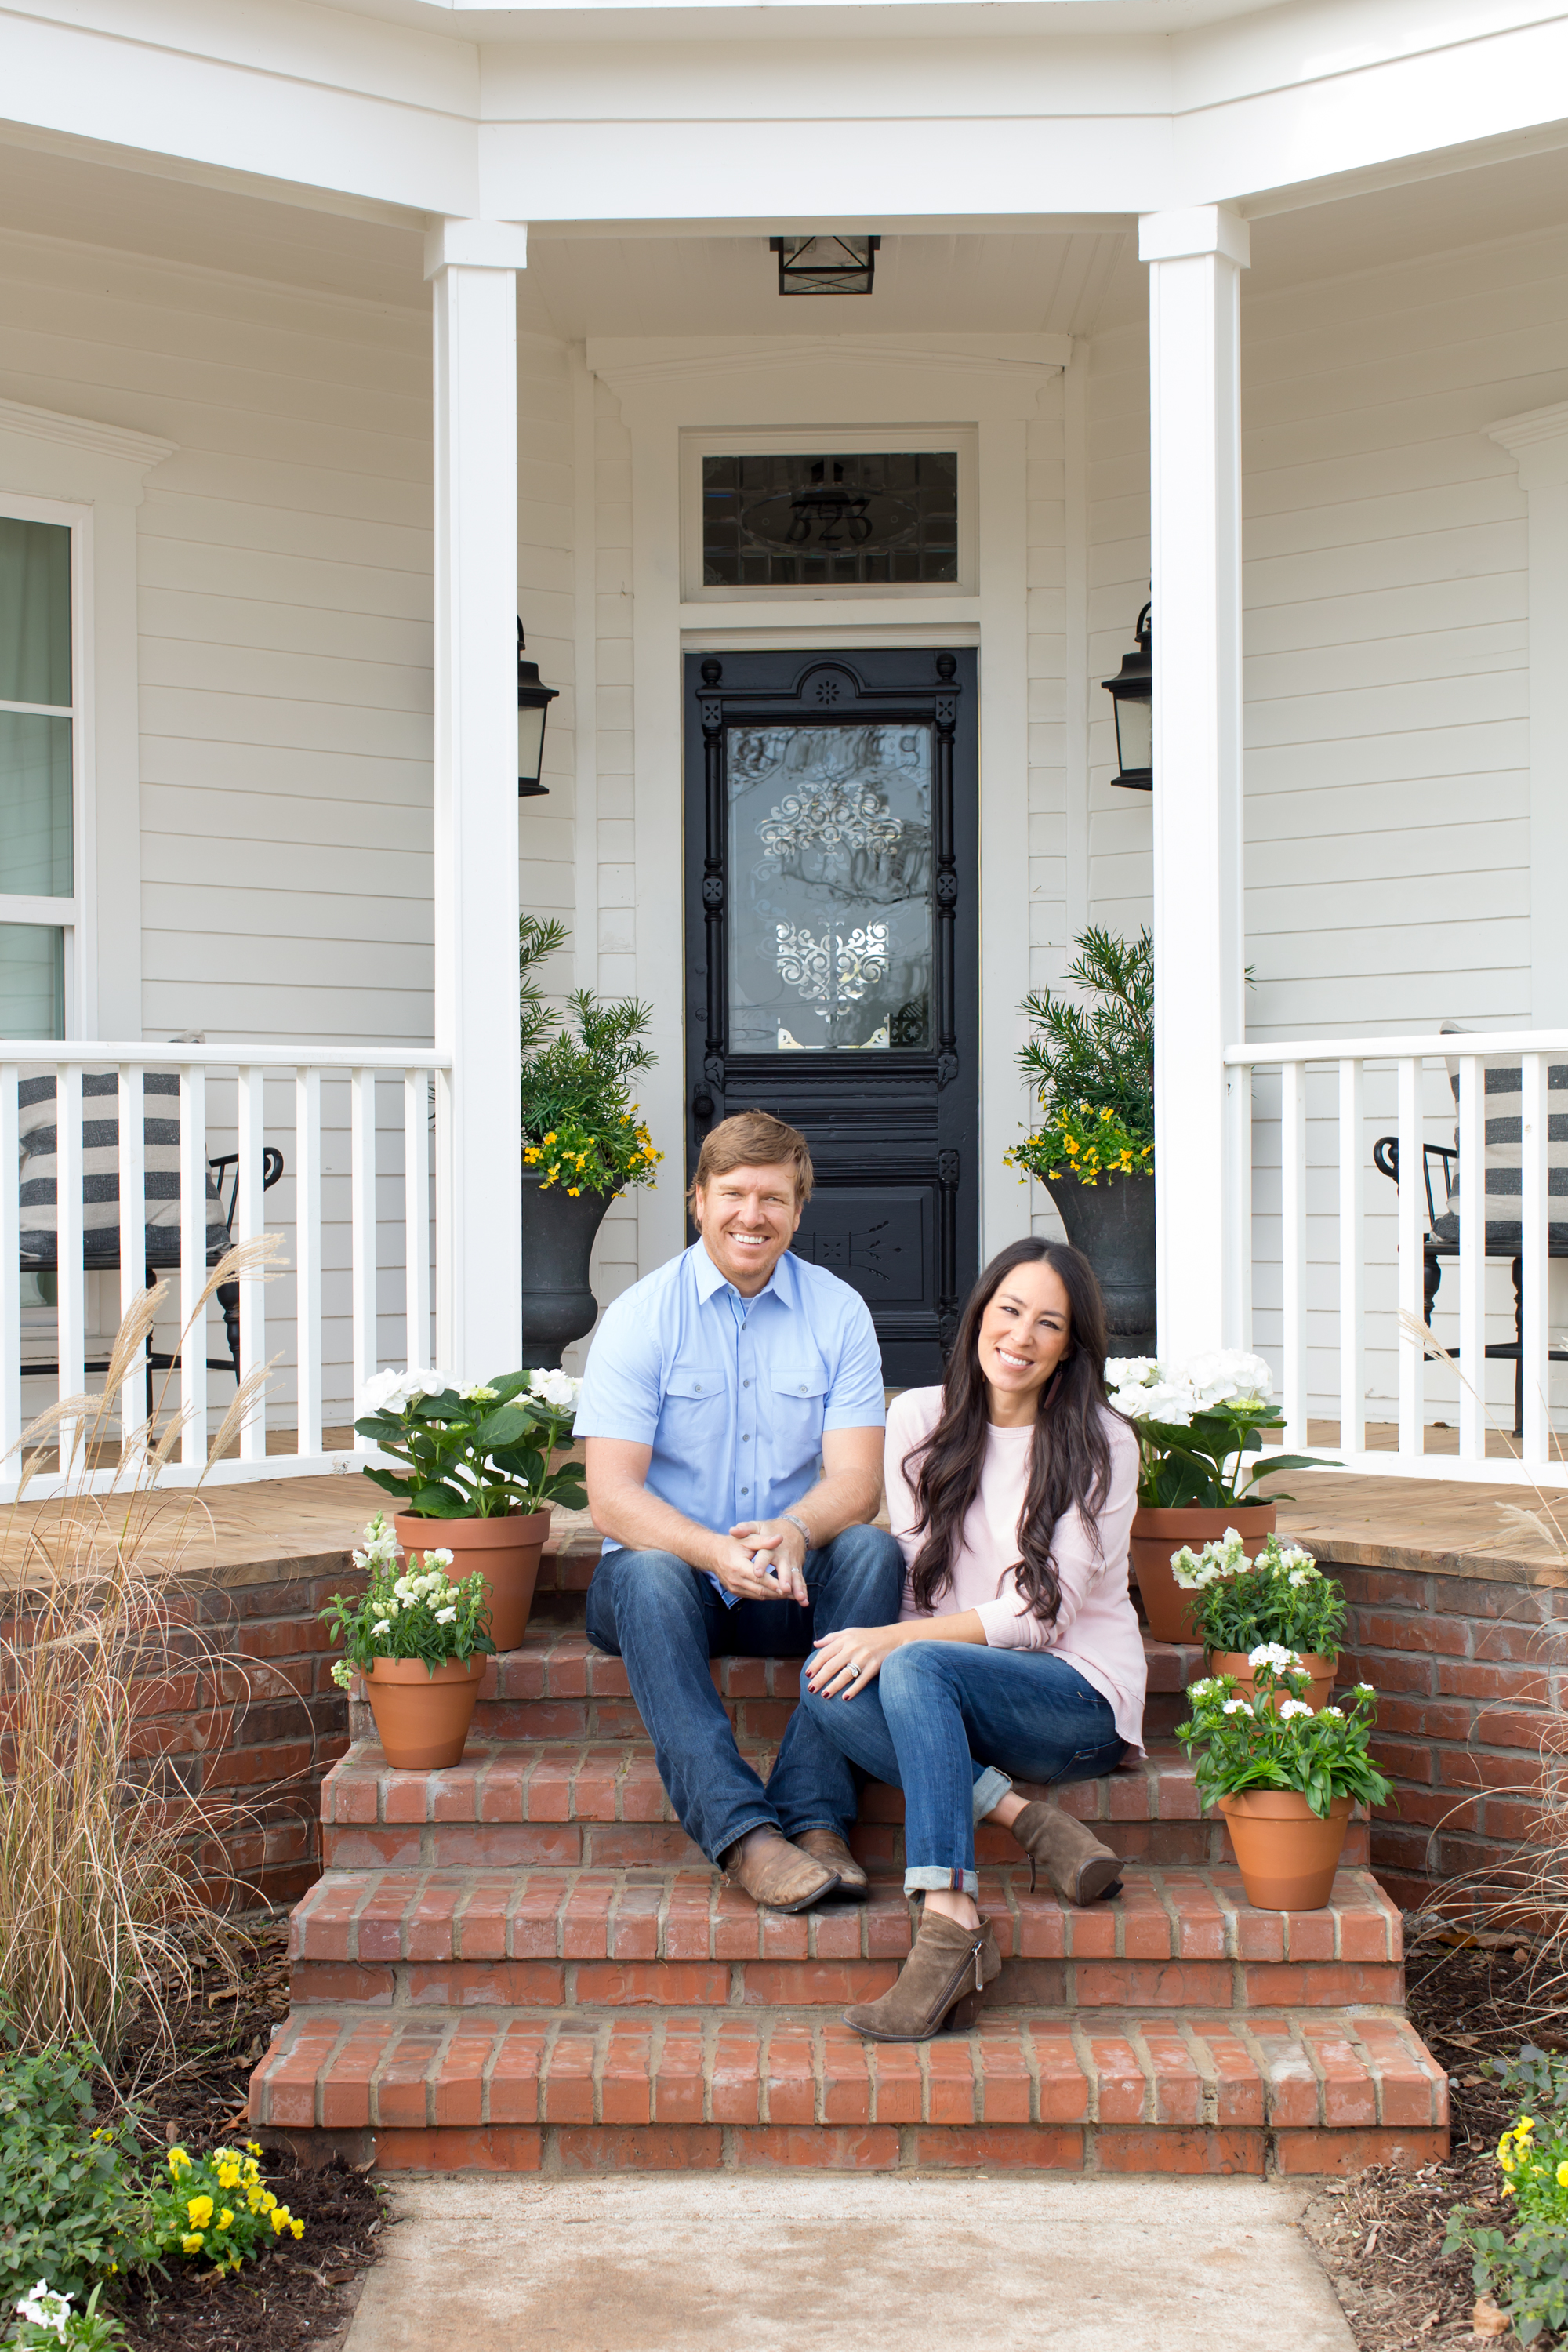 Chip and joanna gaines magnolia house b b tour fixer upper decorating inspiration - Magnolia bedding joanna gaines ...